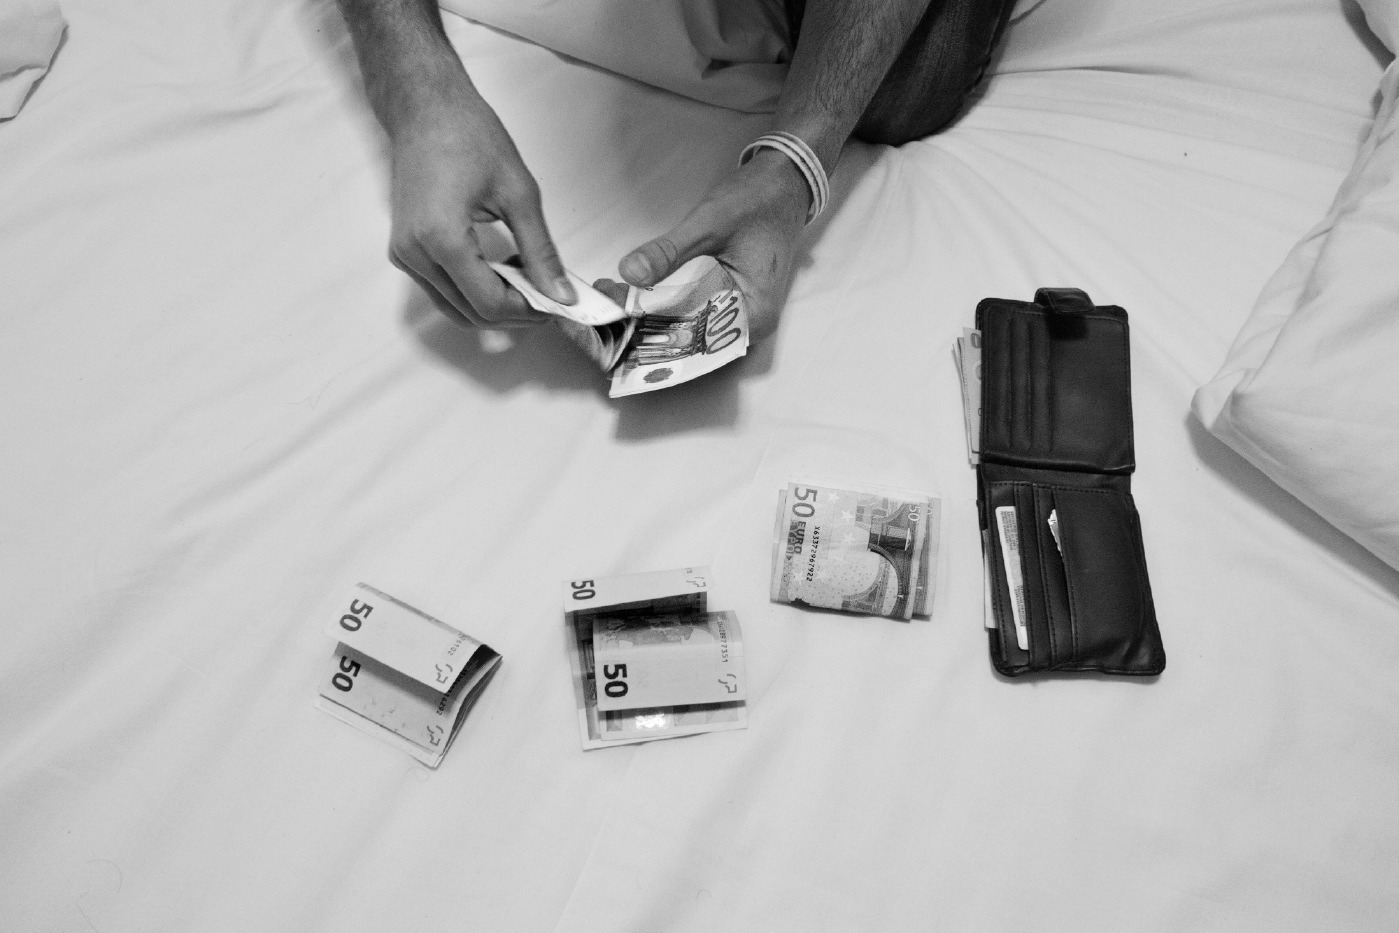 21-year-old Syrian refugee Mohamad Al Masalmeh is seen counting money he received from his sister, to pay a human smugler and be able to cross illegally the border between Romania and Hungary. Bucharest, Romania 2014. © Matteo Bastianelli